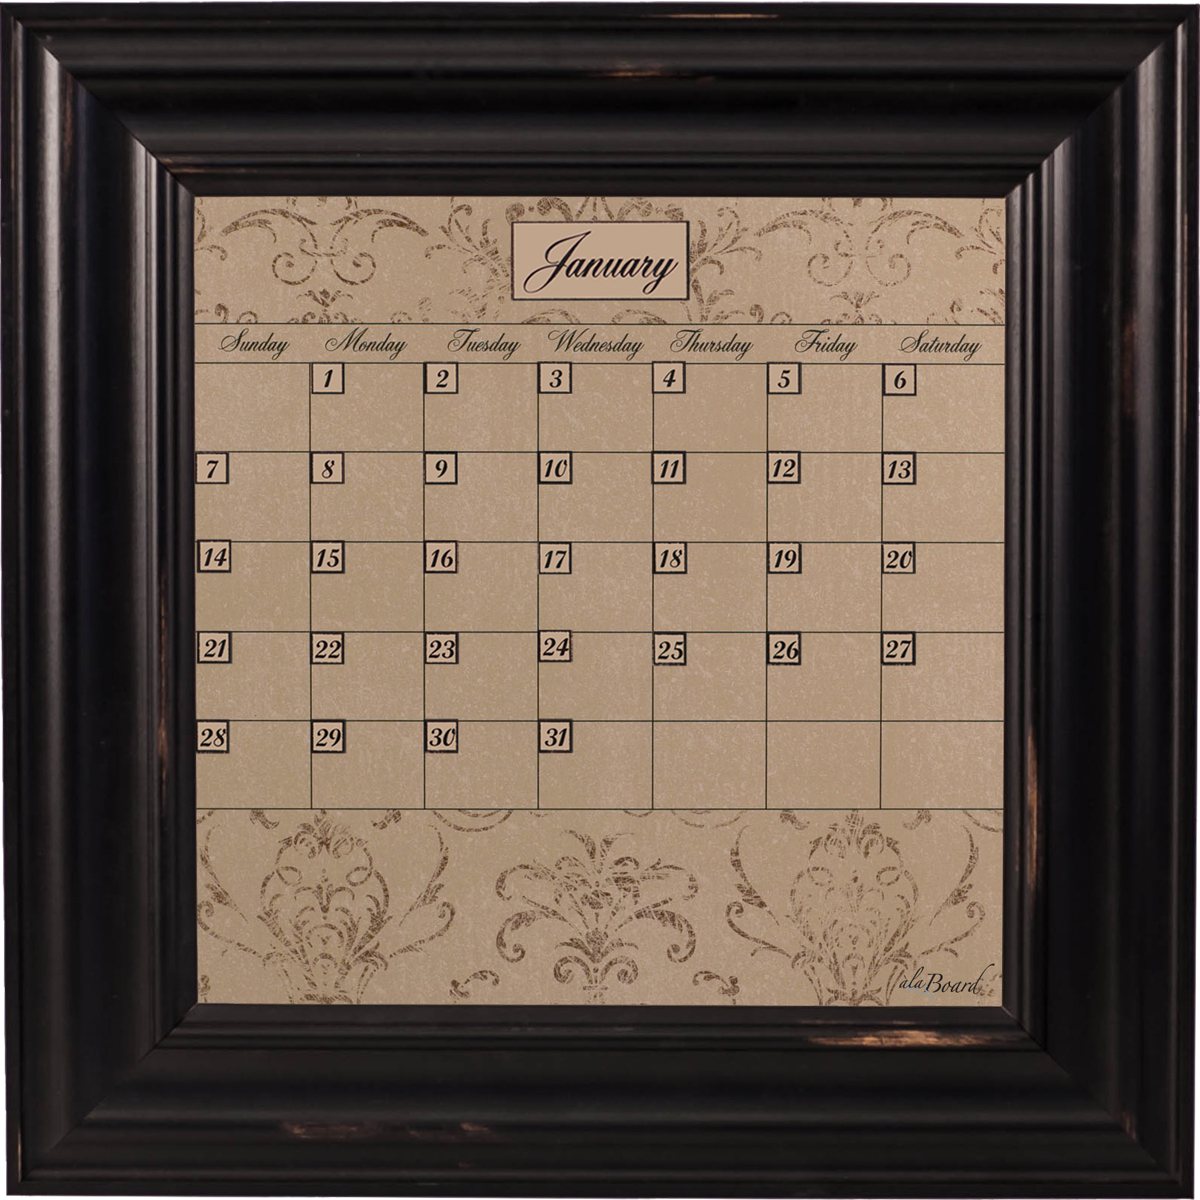 Framed Calendar Boards - Dry Erase Calendars